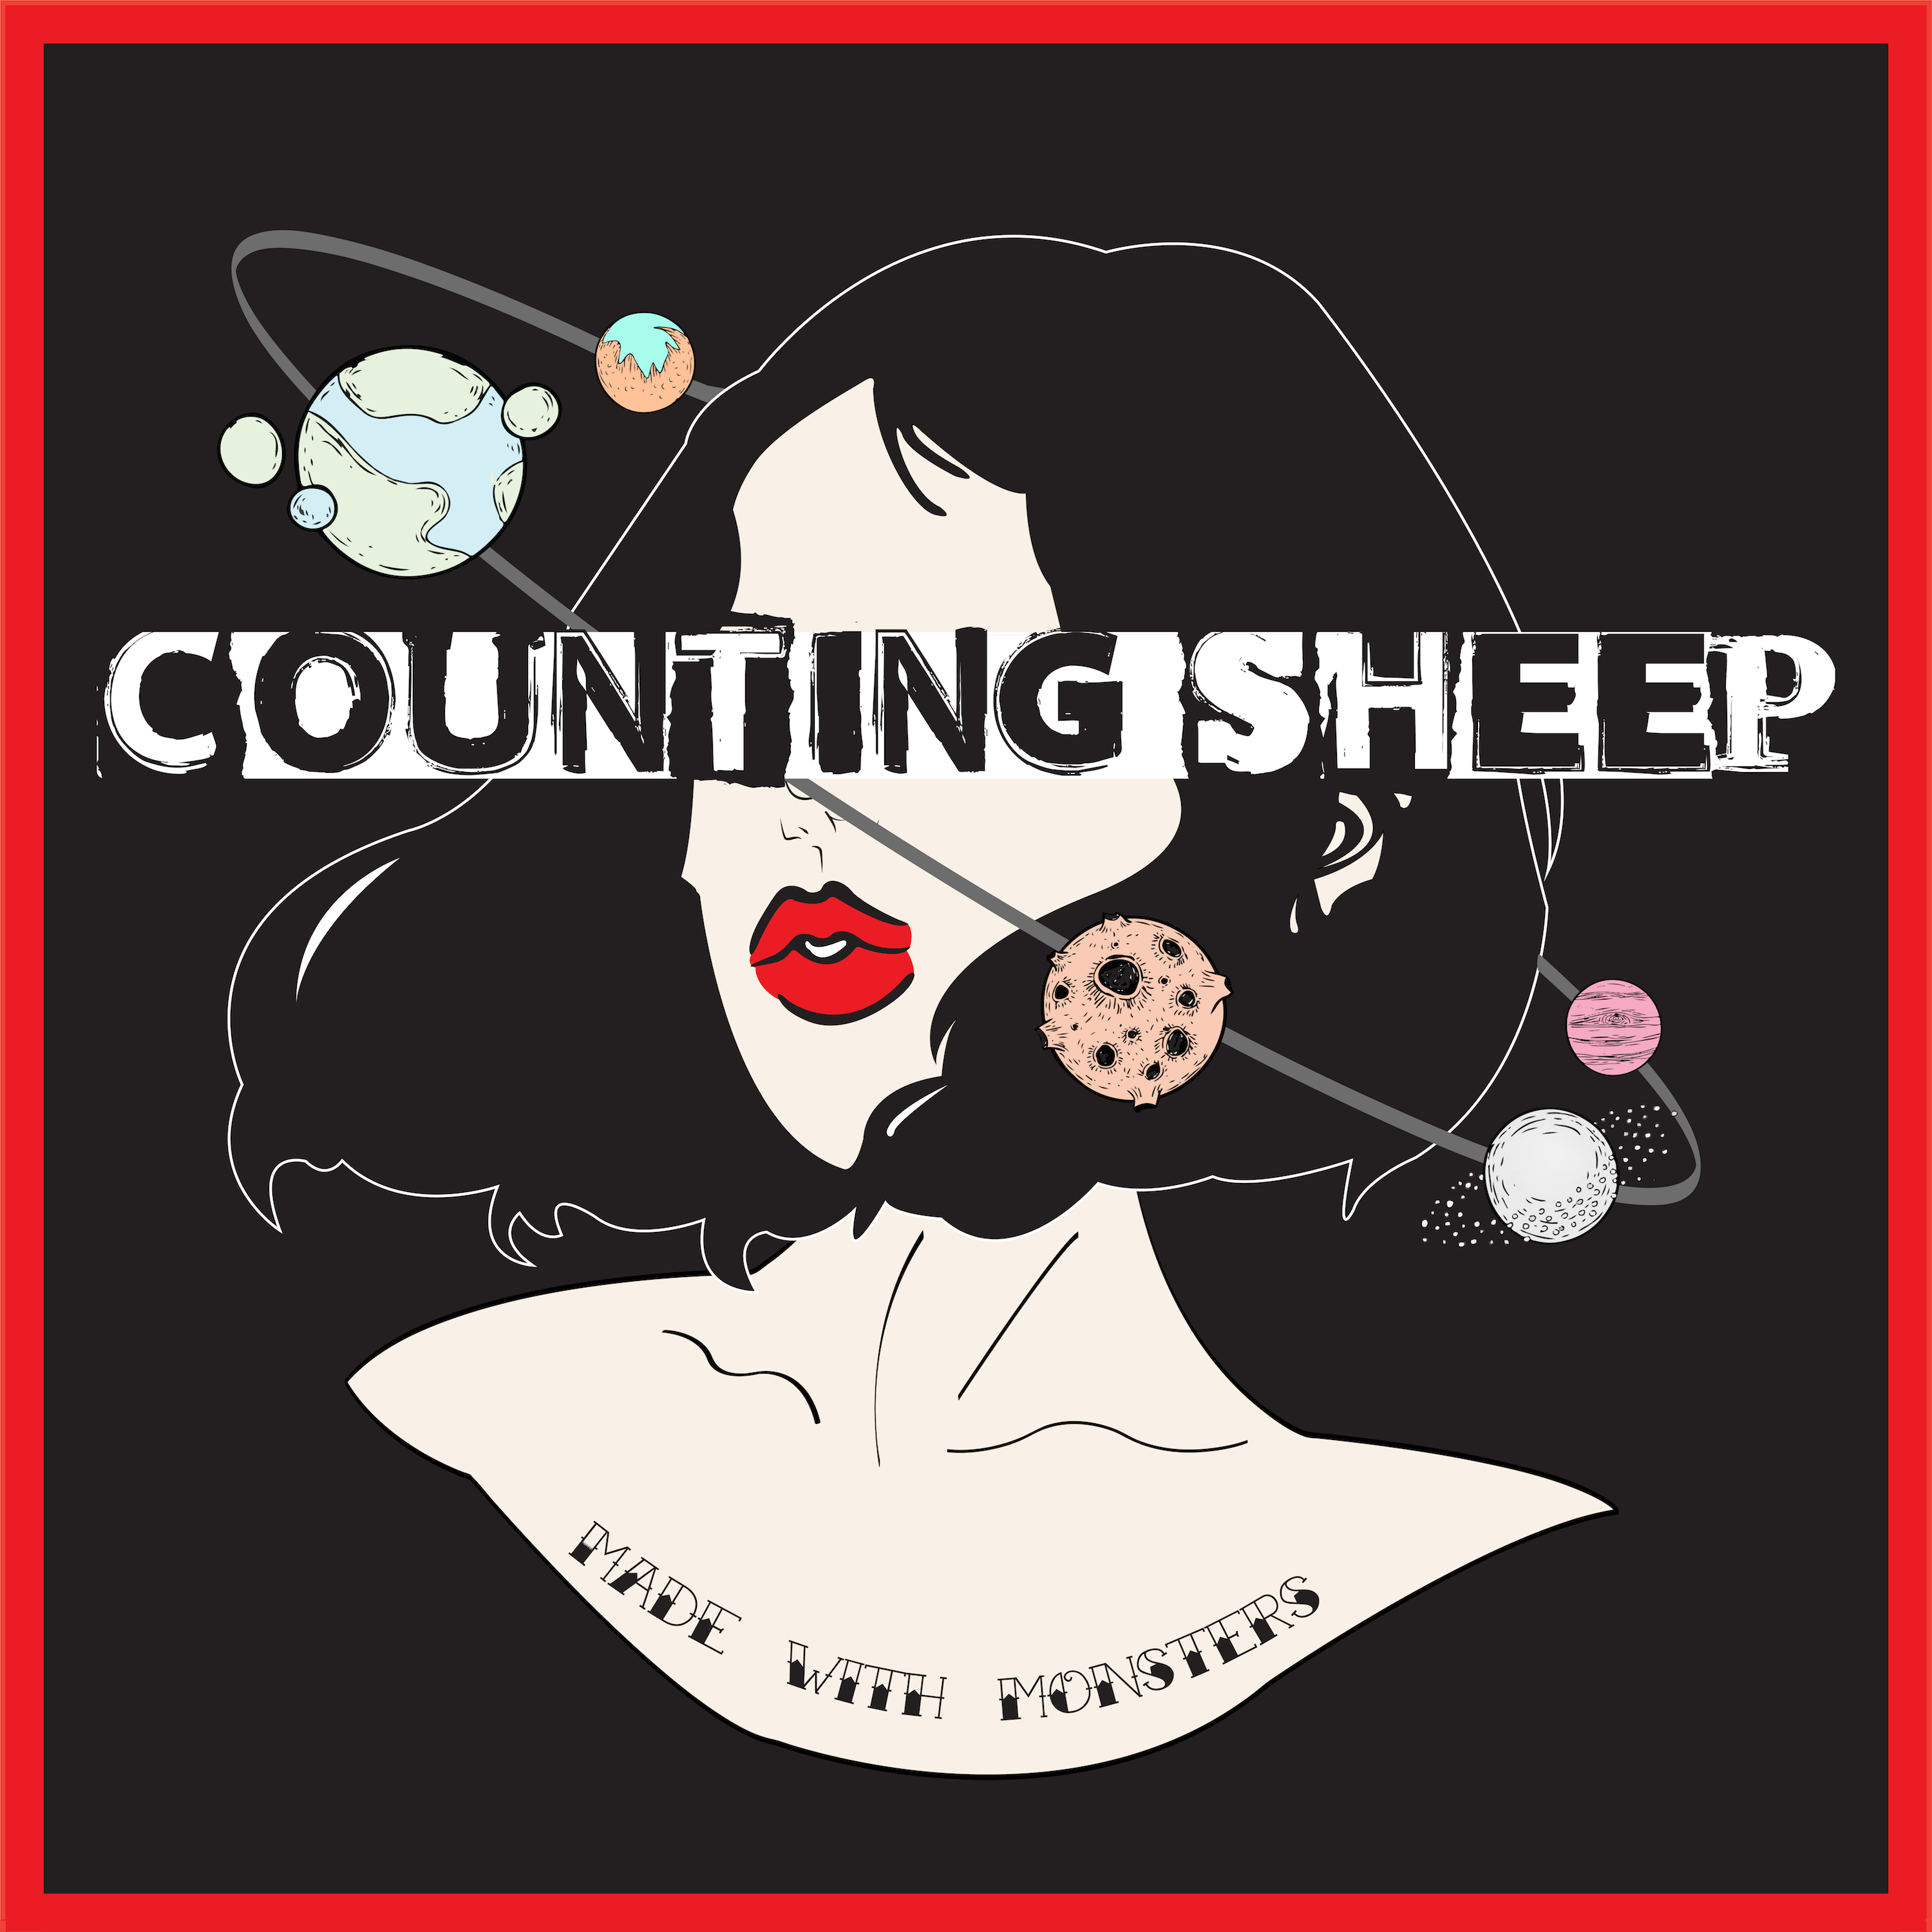 Counting sheep %28final%29